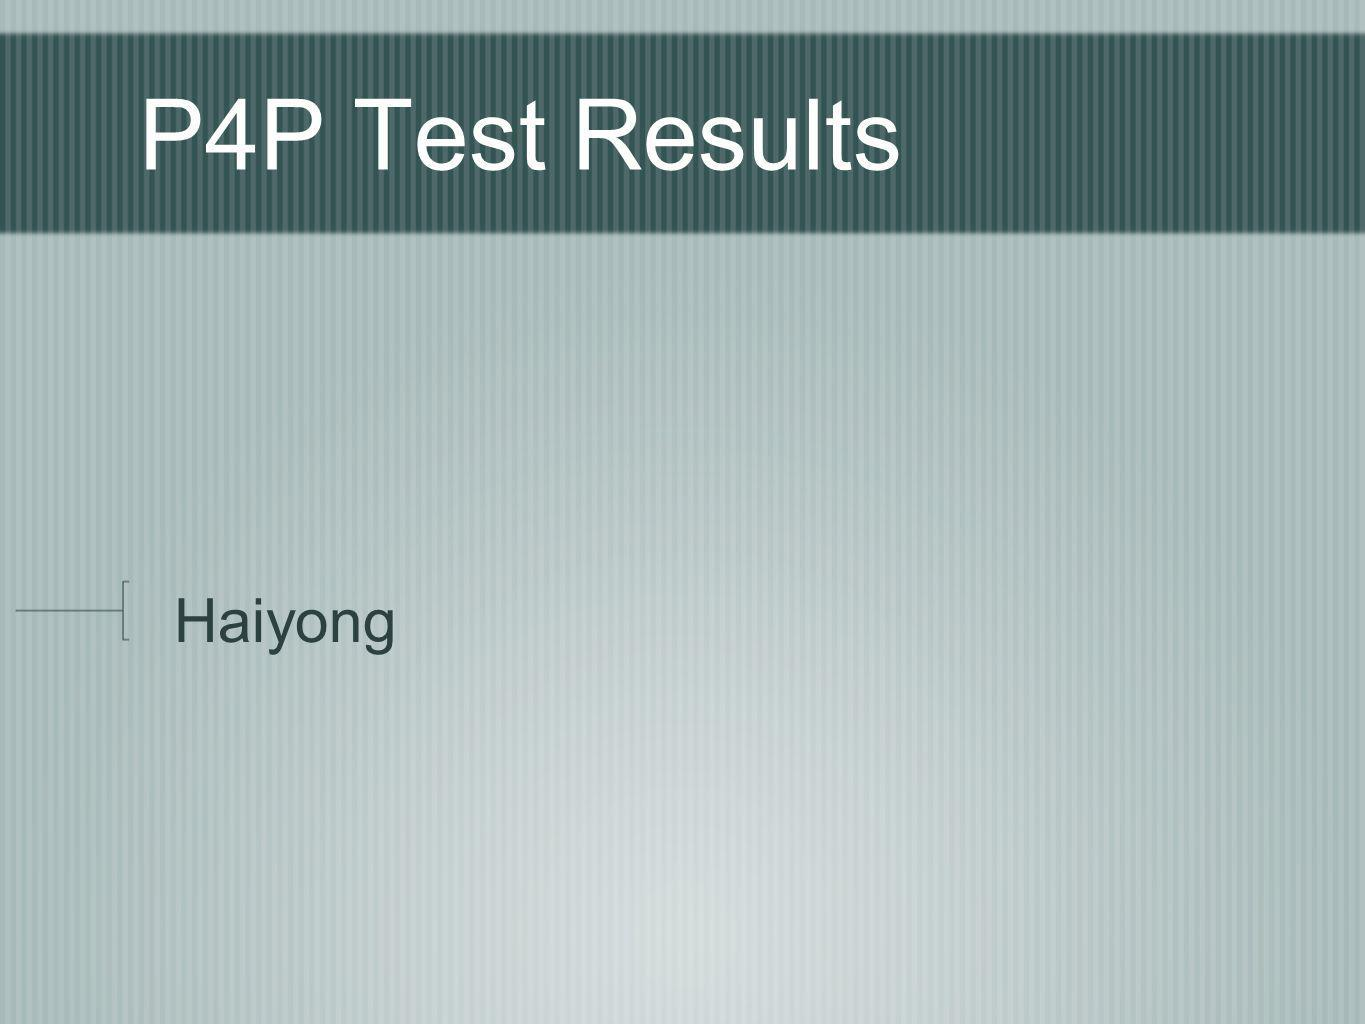 P4P Test Results Haiyong